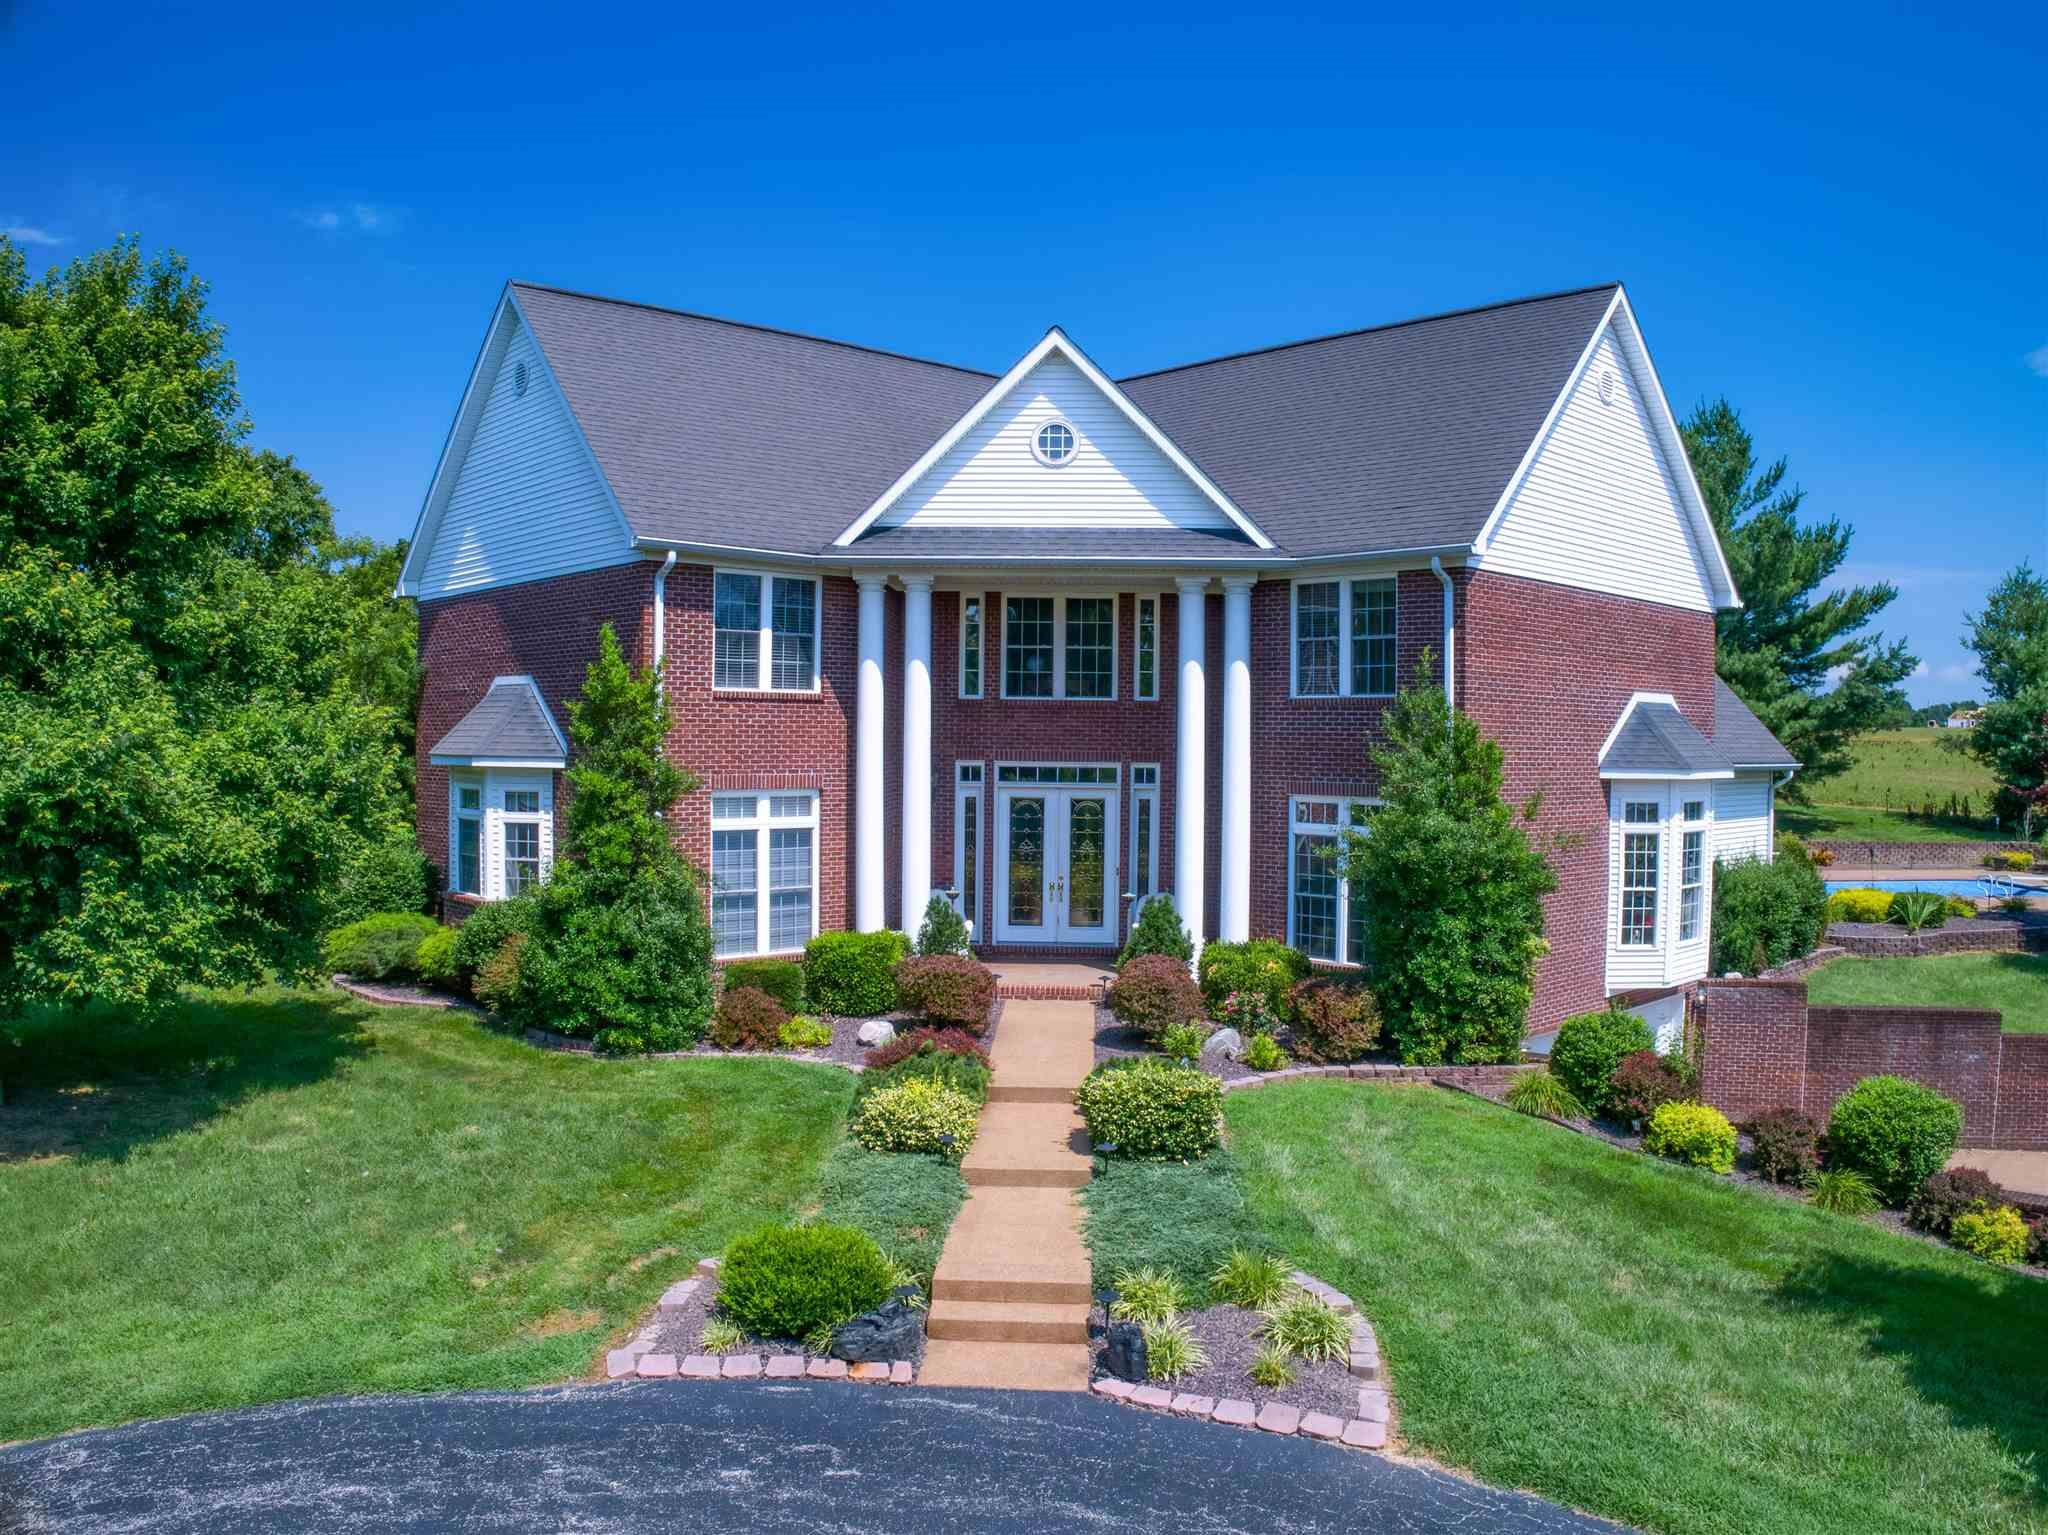 One of kind Luxury Plantation style Estate with private security gate on 9+ acres situated on the desirable west side of Evansville! This 2-story brick home is nestled high on a hill at the end of a beautiful tree-lined circle driveway. Featuring 5 bedrooms, 3 full baths, and 2 half baths. The 2 story columned entry features and a large open staircase. Foyer leads to a grand 25 x 44 two-story great room with lots of open space perfect for a game room/entertainment area. Nice theater room with leather seating and access to a half bath that also serves as the pool bathroom. Wood and tile surround the wood burning fireplace with a gas starter in the living room. The living room opens up to the eat-in kitchen which offers granite counter tops, a bar, a built-in wine rack, and stainless sink. Off the kitchen is the dining room. Lots of storage in the laundry/utility room with over and under counter cabinets, plentiful counter space, and a closet. The first floor master bedroom offers a Jacuzzi tub, with tile surround. The master bath has a double vanity, marble flooring, stand up 3-headed tile shower, and plenty of closet space. Upstairs are four large bedrooms, two bedrooms on each side of the open staircase. Both sets of rooms have a Jack and Jill bath between them. Back off the kitchen is a staircase leading to the basement with a room for more storage. Large oversized garage under the home could accommodated up to four cars. There are several additional basement storage rooms. On the grounds is a 48x64 detached garage with long built-in workbenches and is heated and cooled. Stairs lead up to an above garage apartment making this home great for multi-generation families and guests. The apartment has a full bath and is setup to add a kitchen if needed. Behind the home is the in-ground, heated pool with a diving board, and automatic cover. Not far is a heated and cooled playhouse. Seller states that he owns half of the lake at the left of the property when entering the gate. Don't miss seeing this one of a kind property!  Seller understands that the Buyer will want to do some redecorating, so seller is offering a $50,000 redecorating allowance.